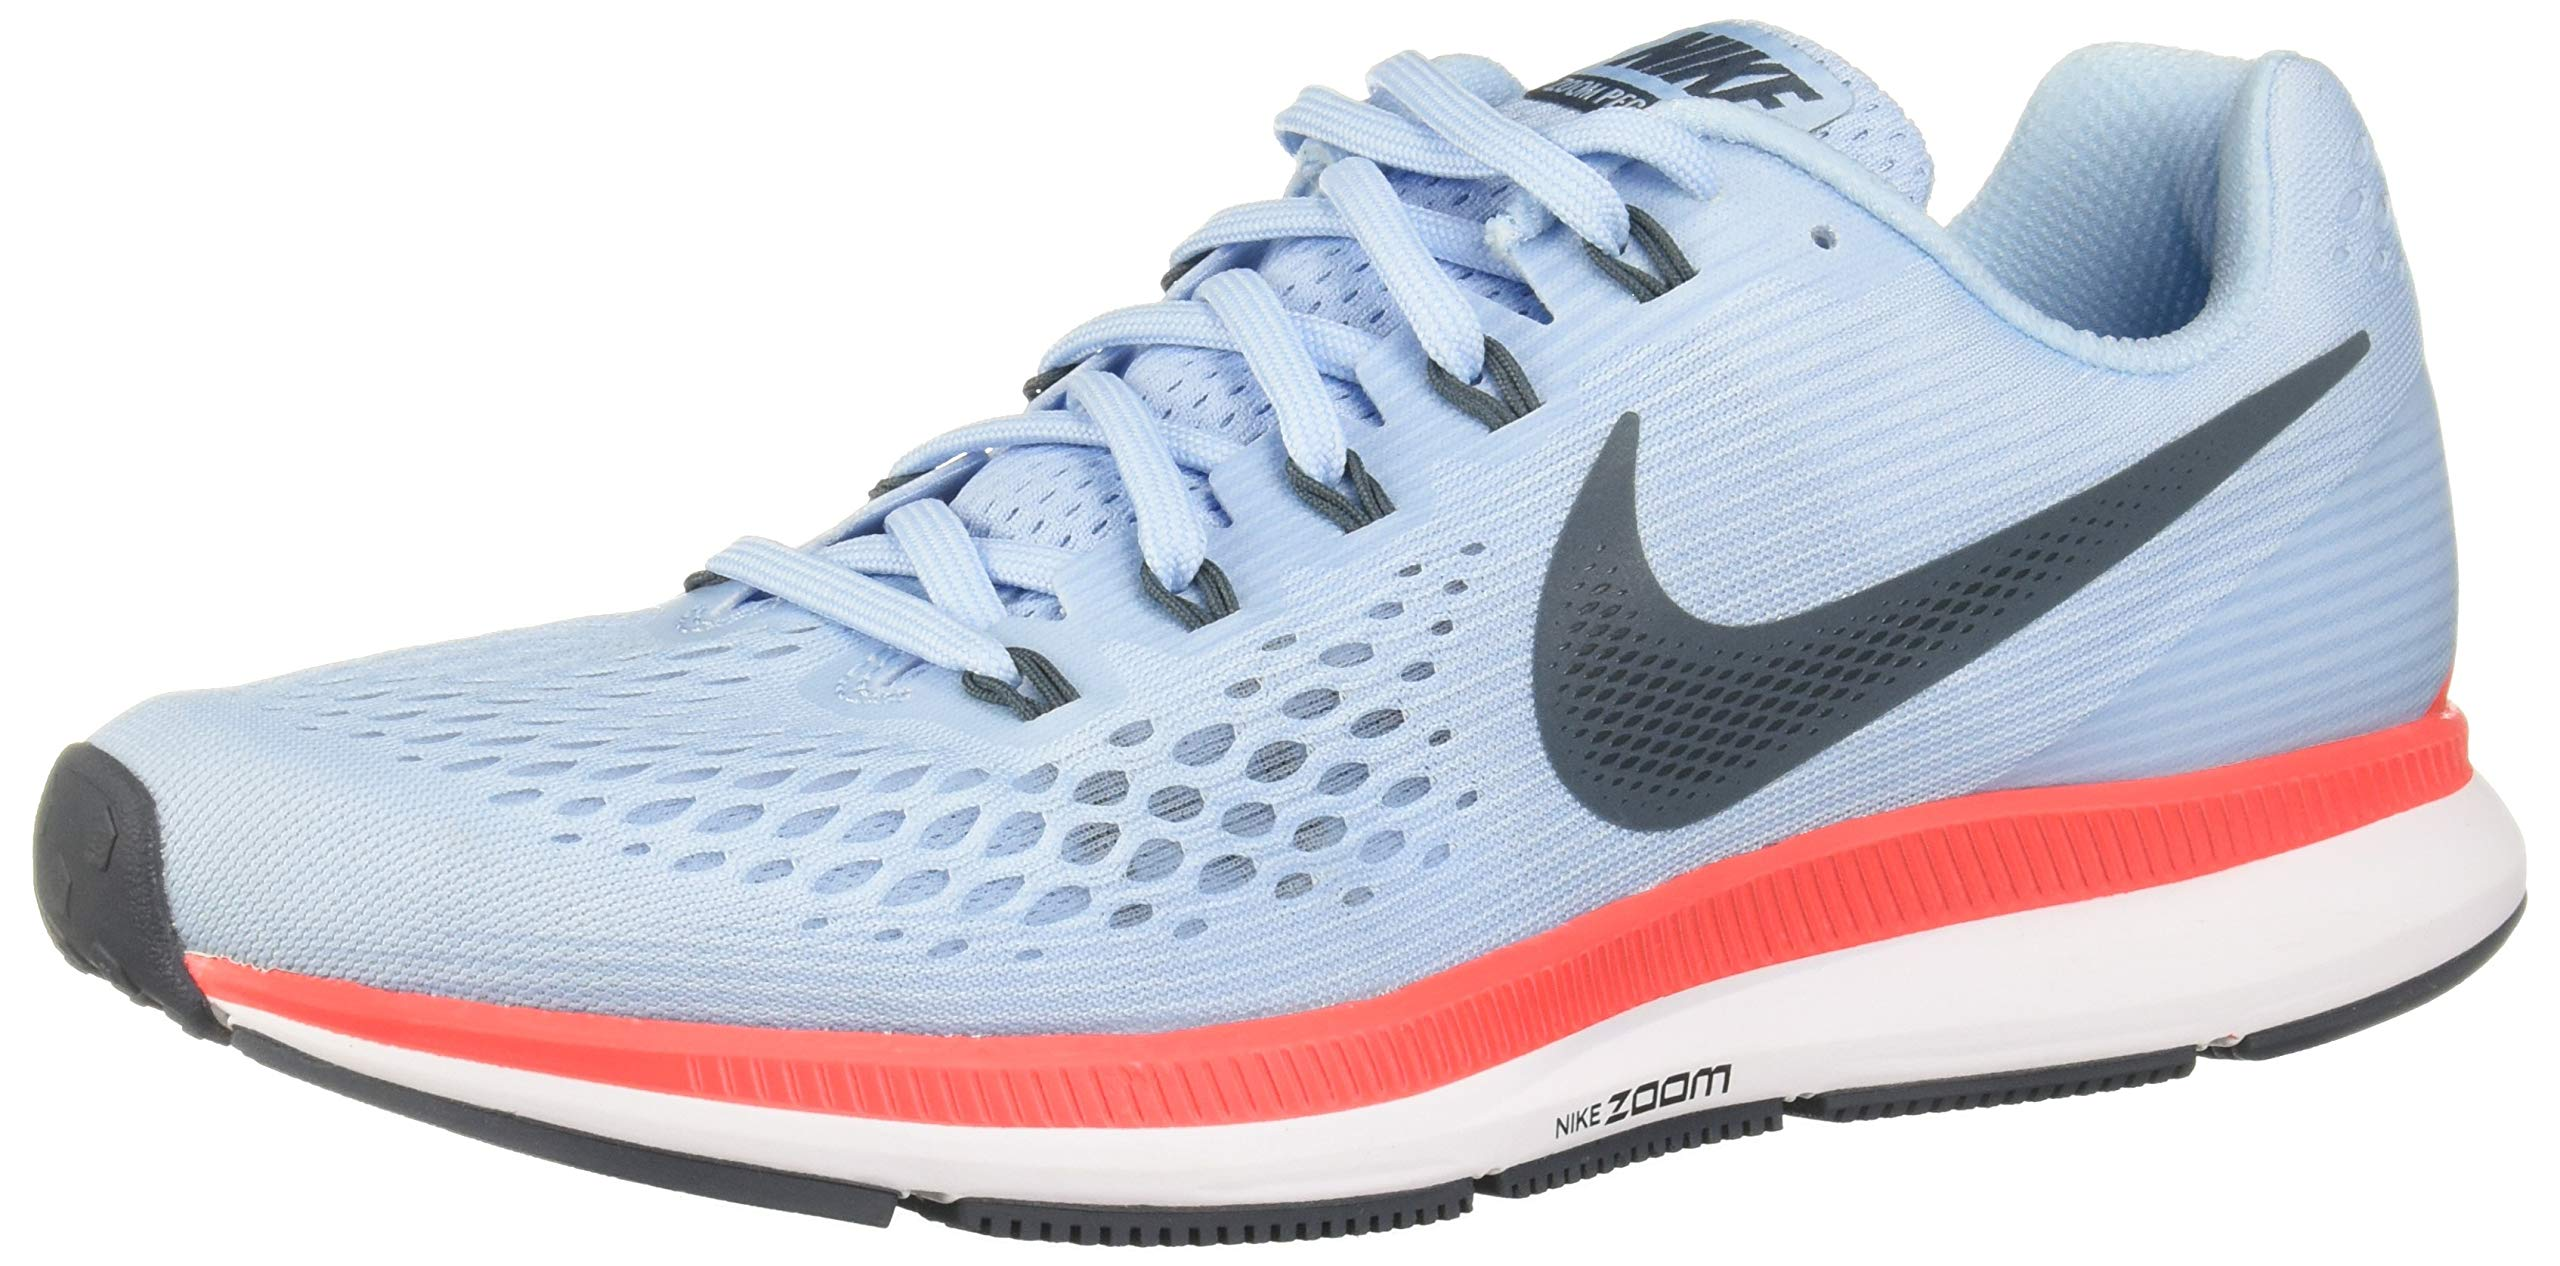 100% authentic 1e3da 9f037 Nike Men's Air Zoom Pegasus 34 Running Shoe Ice Blue/Blue Fox (9.5 D US)